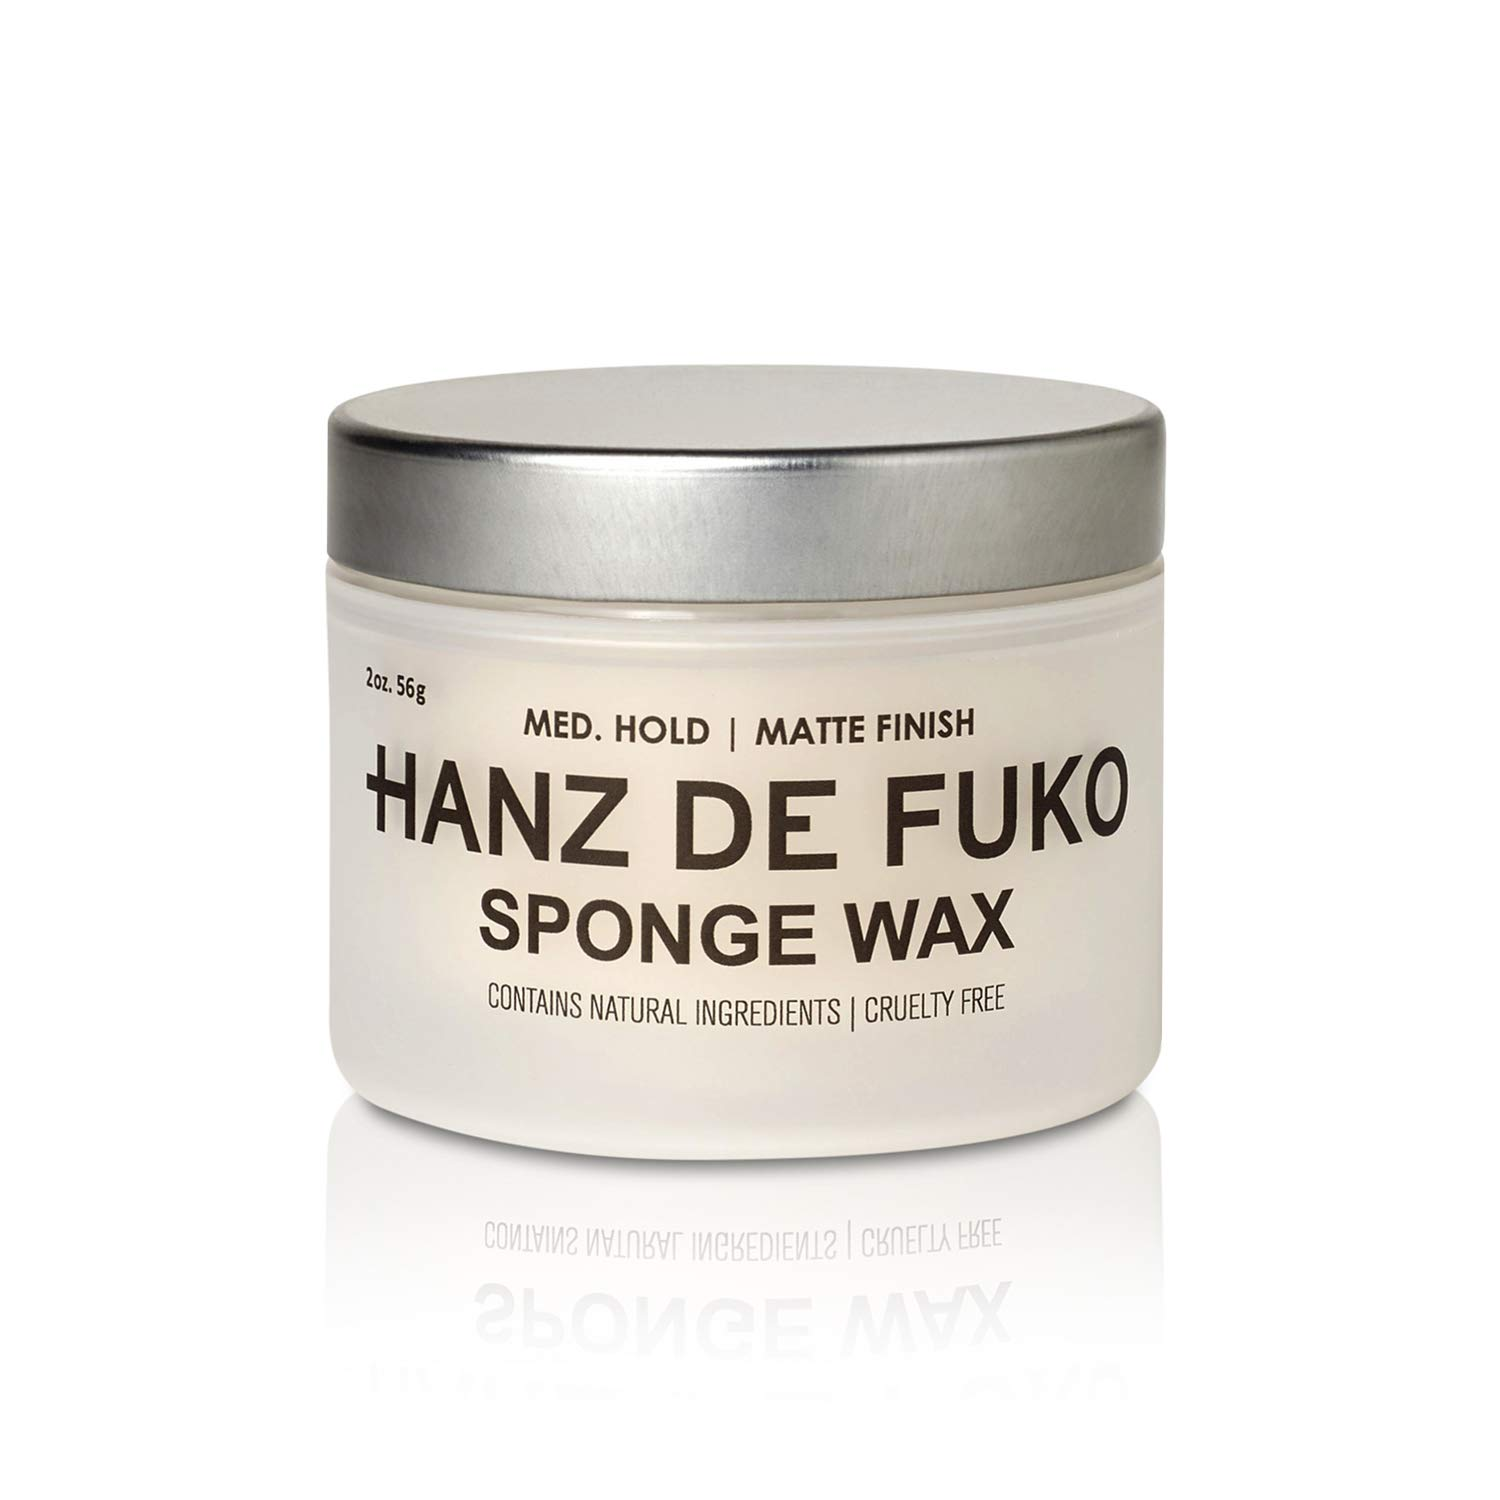 Hanz de Fuko Sponge-Wax: Premium Men's Hair Styling Wax with Semi-Matte Finish (2oz)